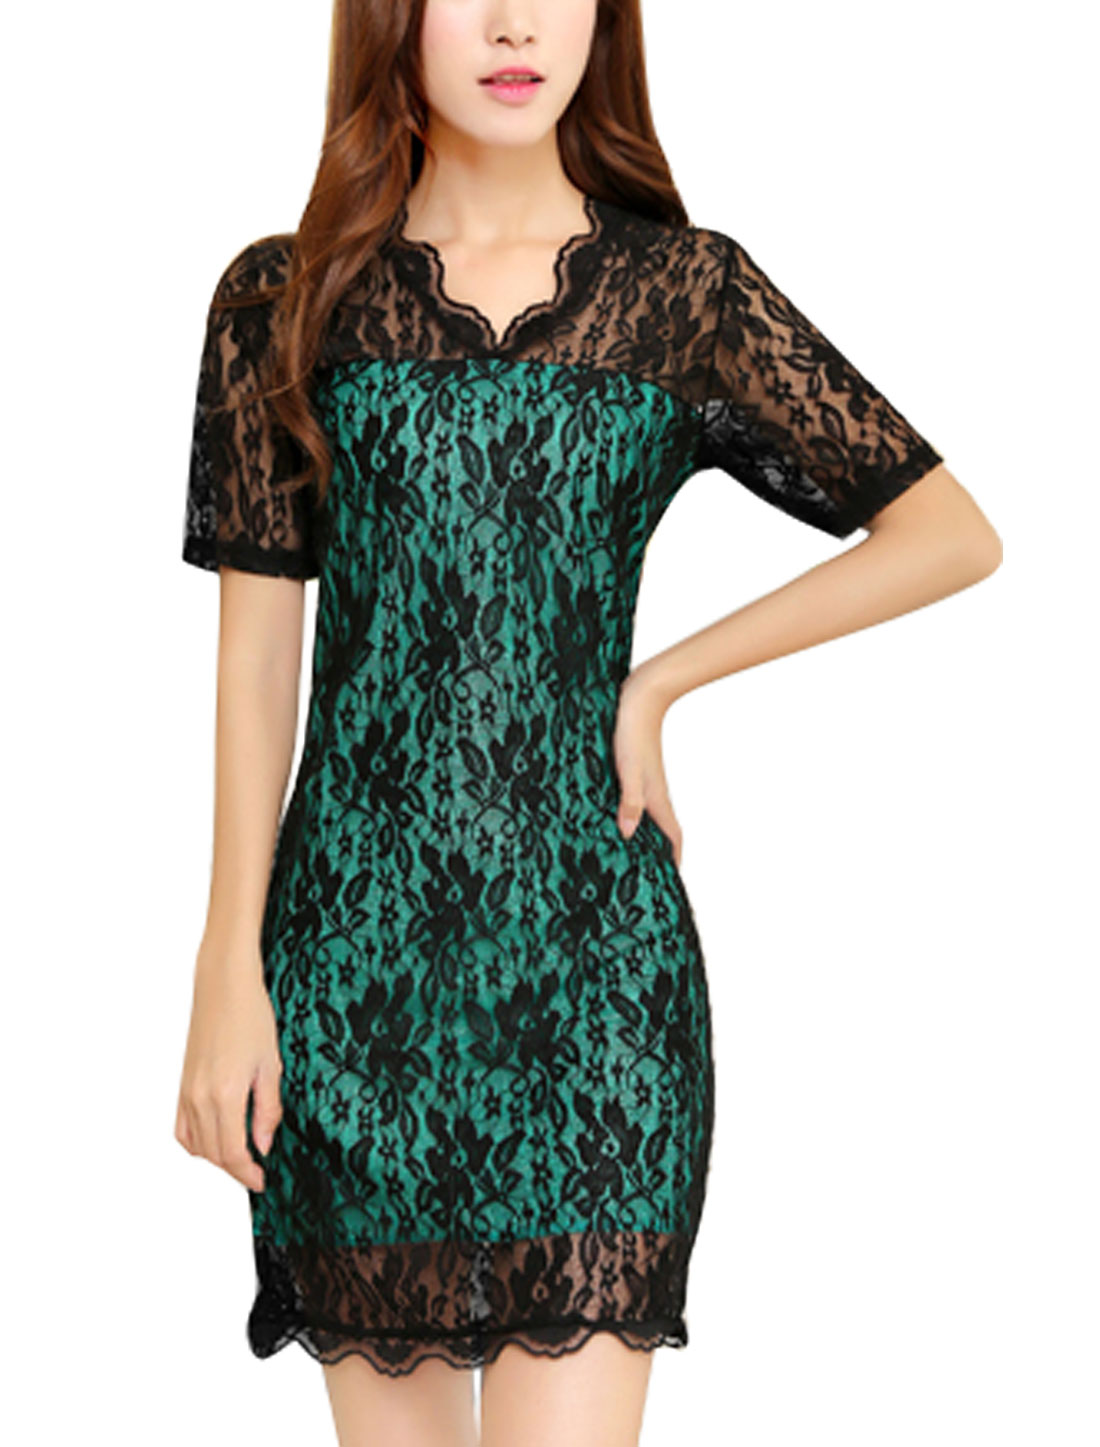 Women V Neckline Straight Scalloped Trim See Through Lace Dress Black Dark Green S